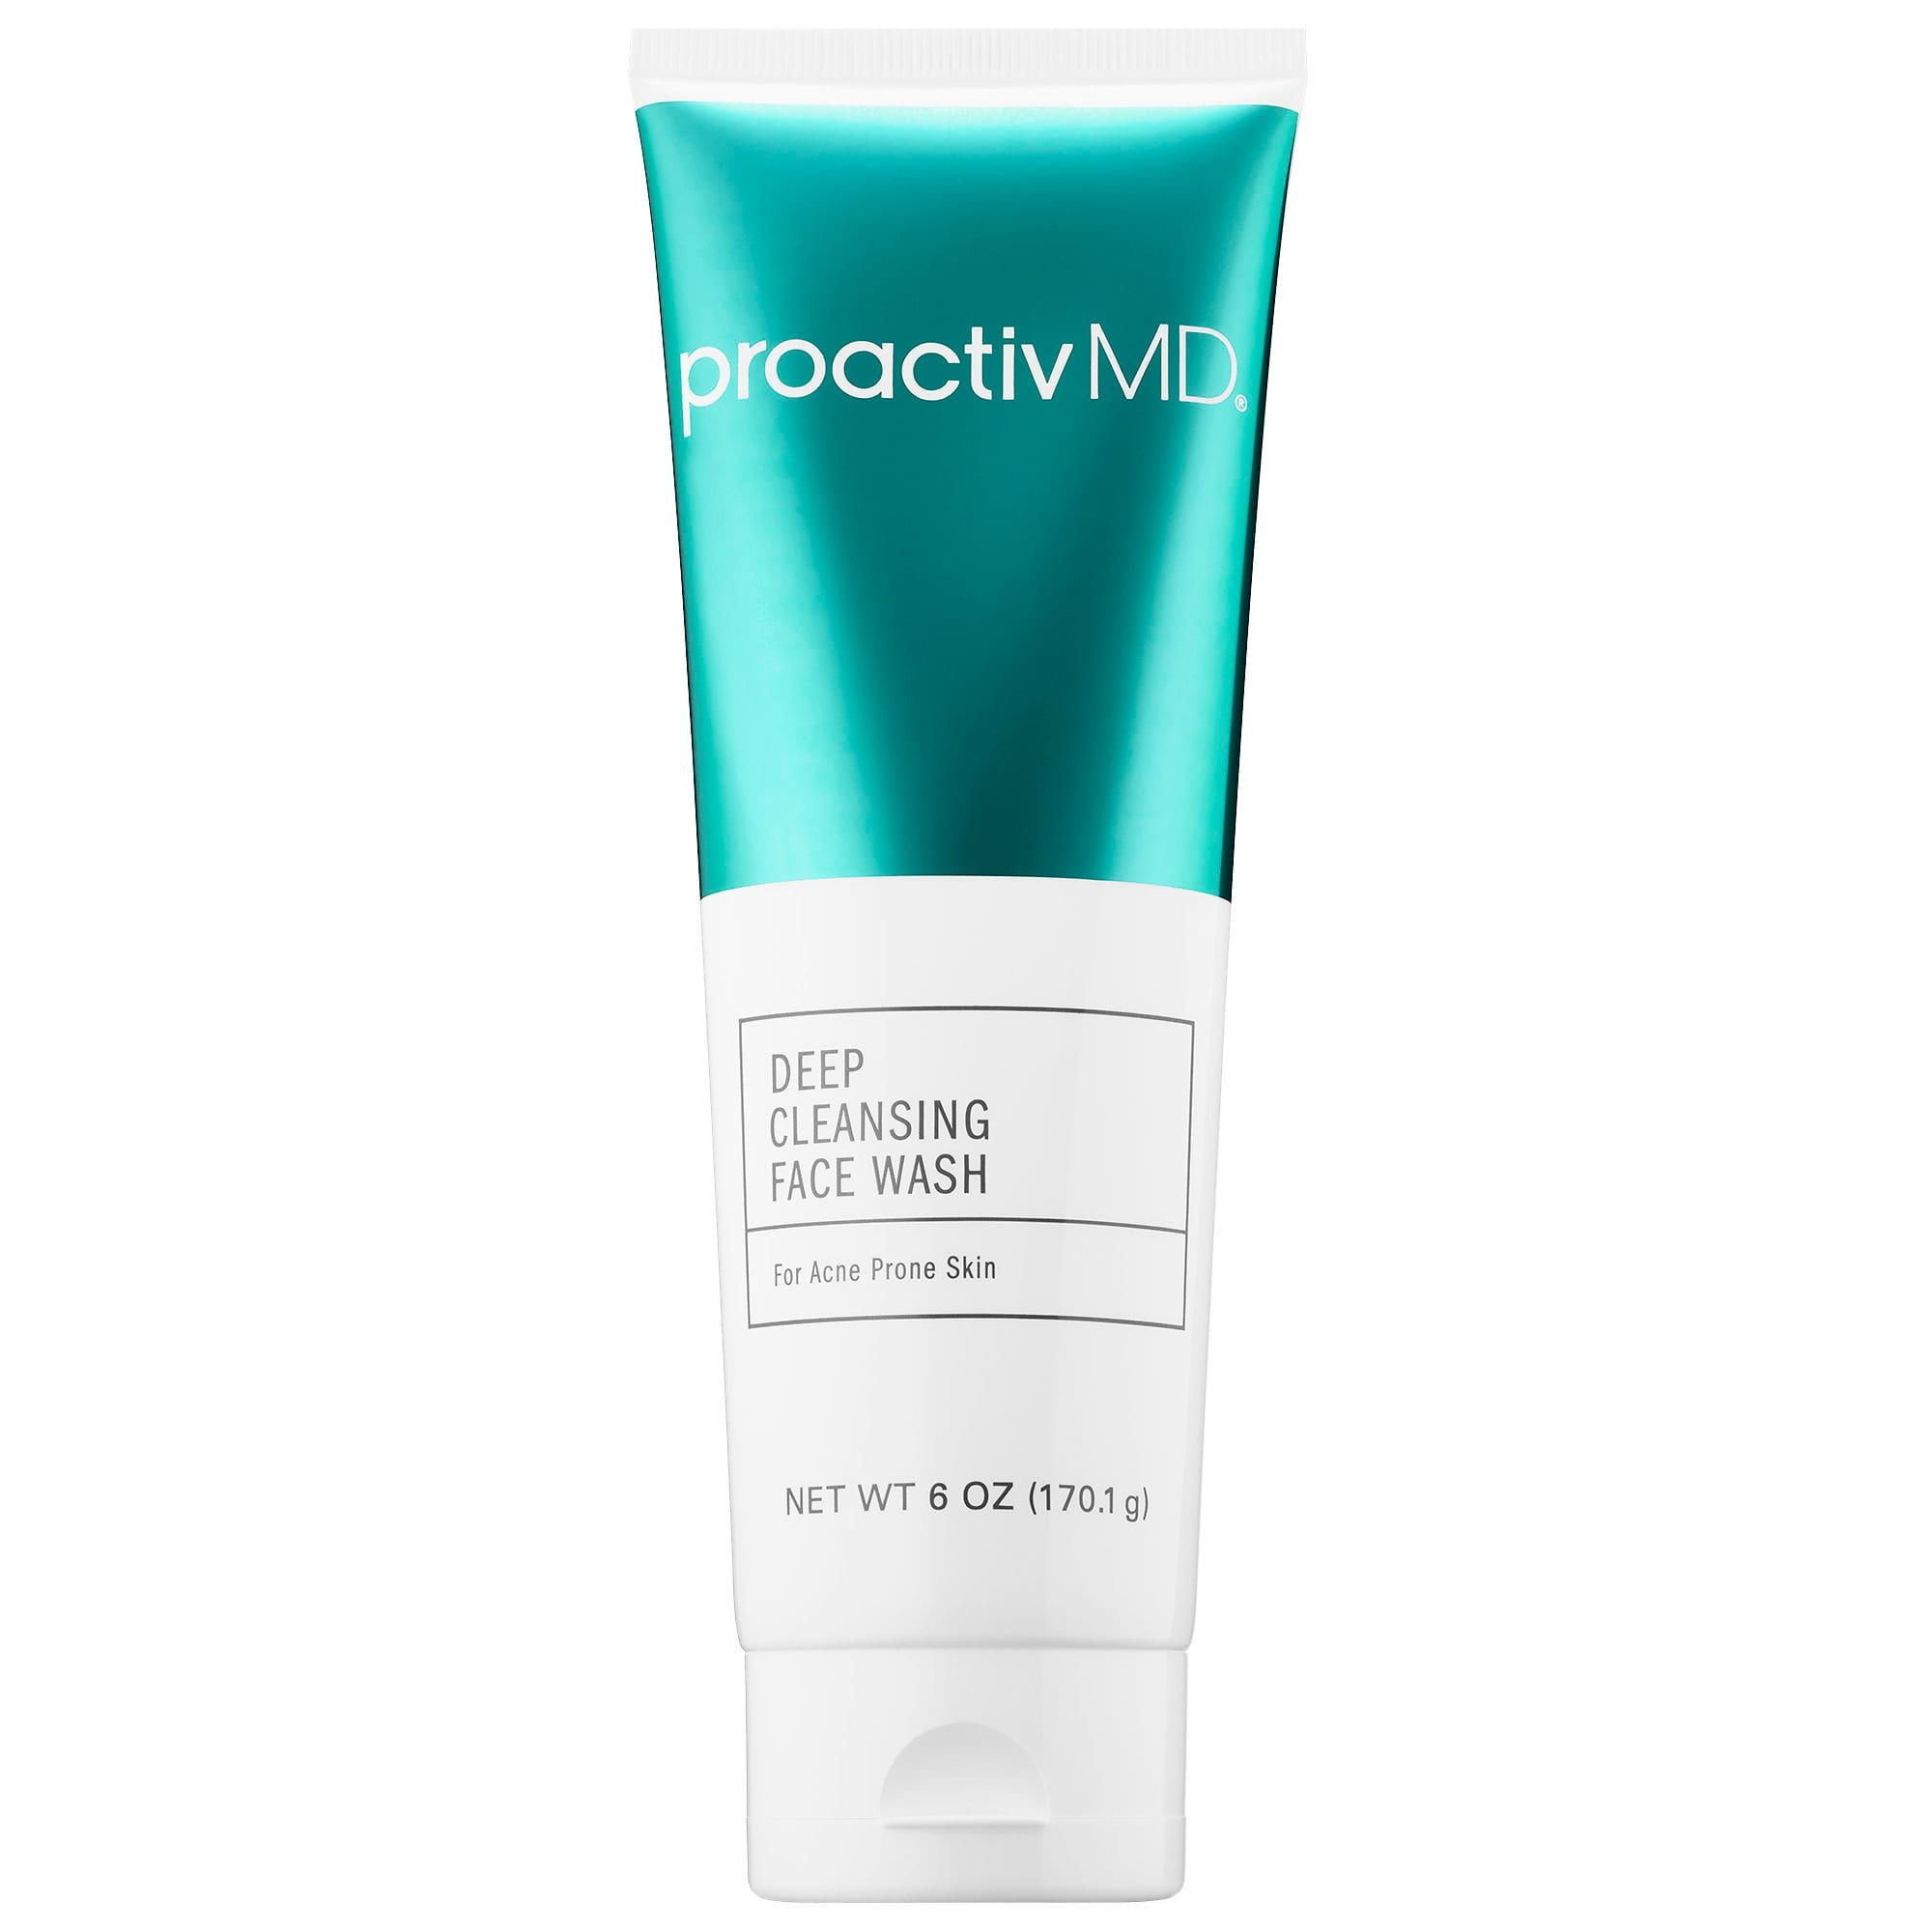 Deep Cleansing Face Wash Proactiv Sephora In 2020 Deep Cleansing Face Wash Cleansing Face Face Wash